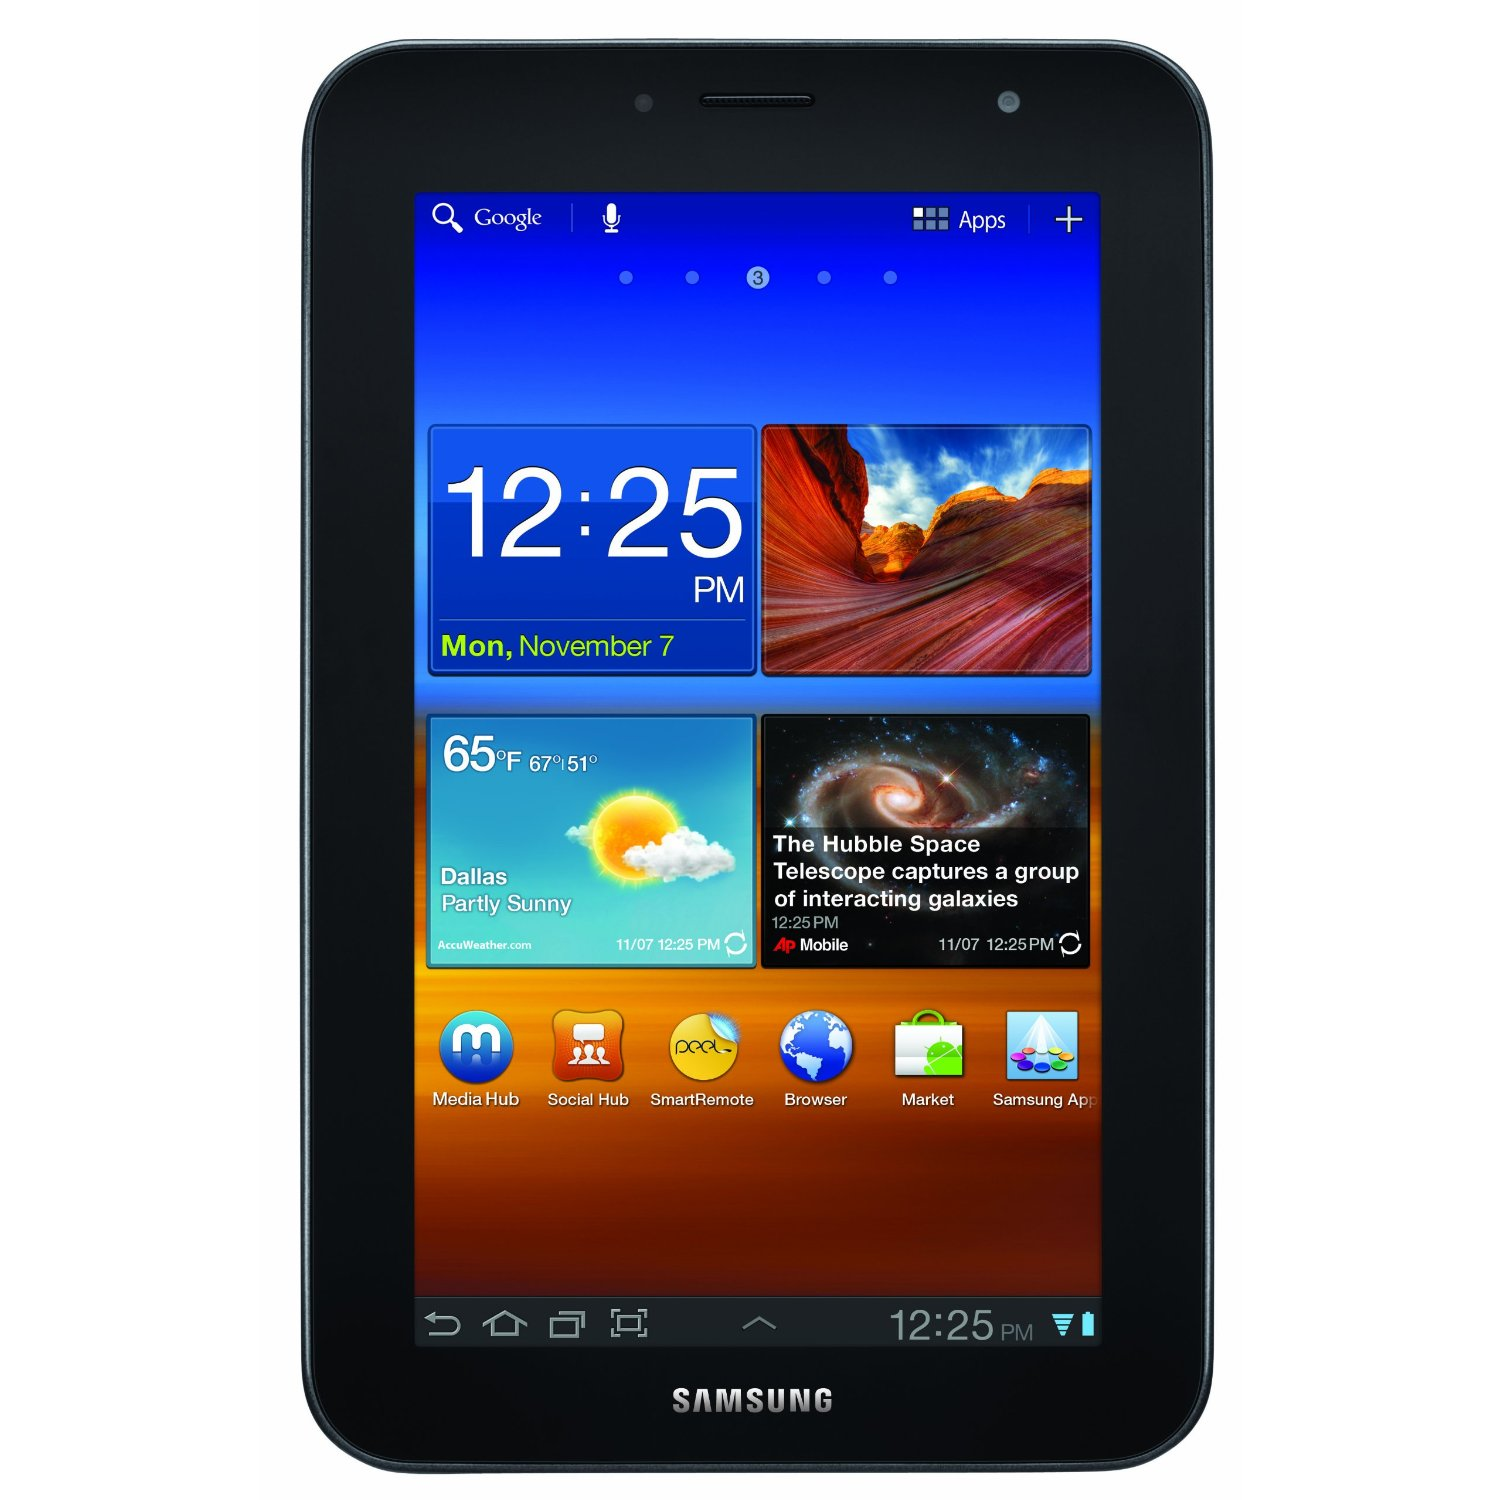 Samsung Galaxy Tab 7.0 Plus 7-inch Dual Core Android 3.2 ...